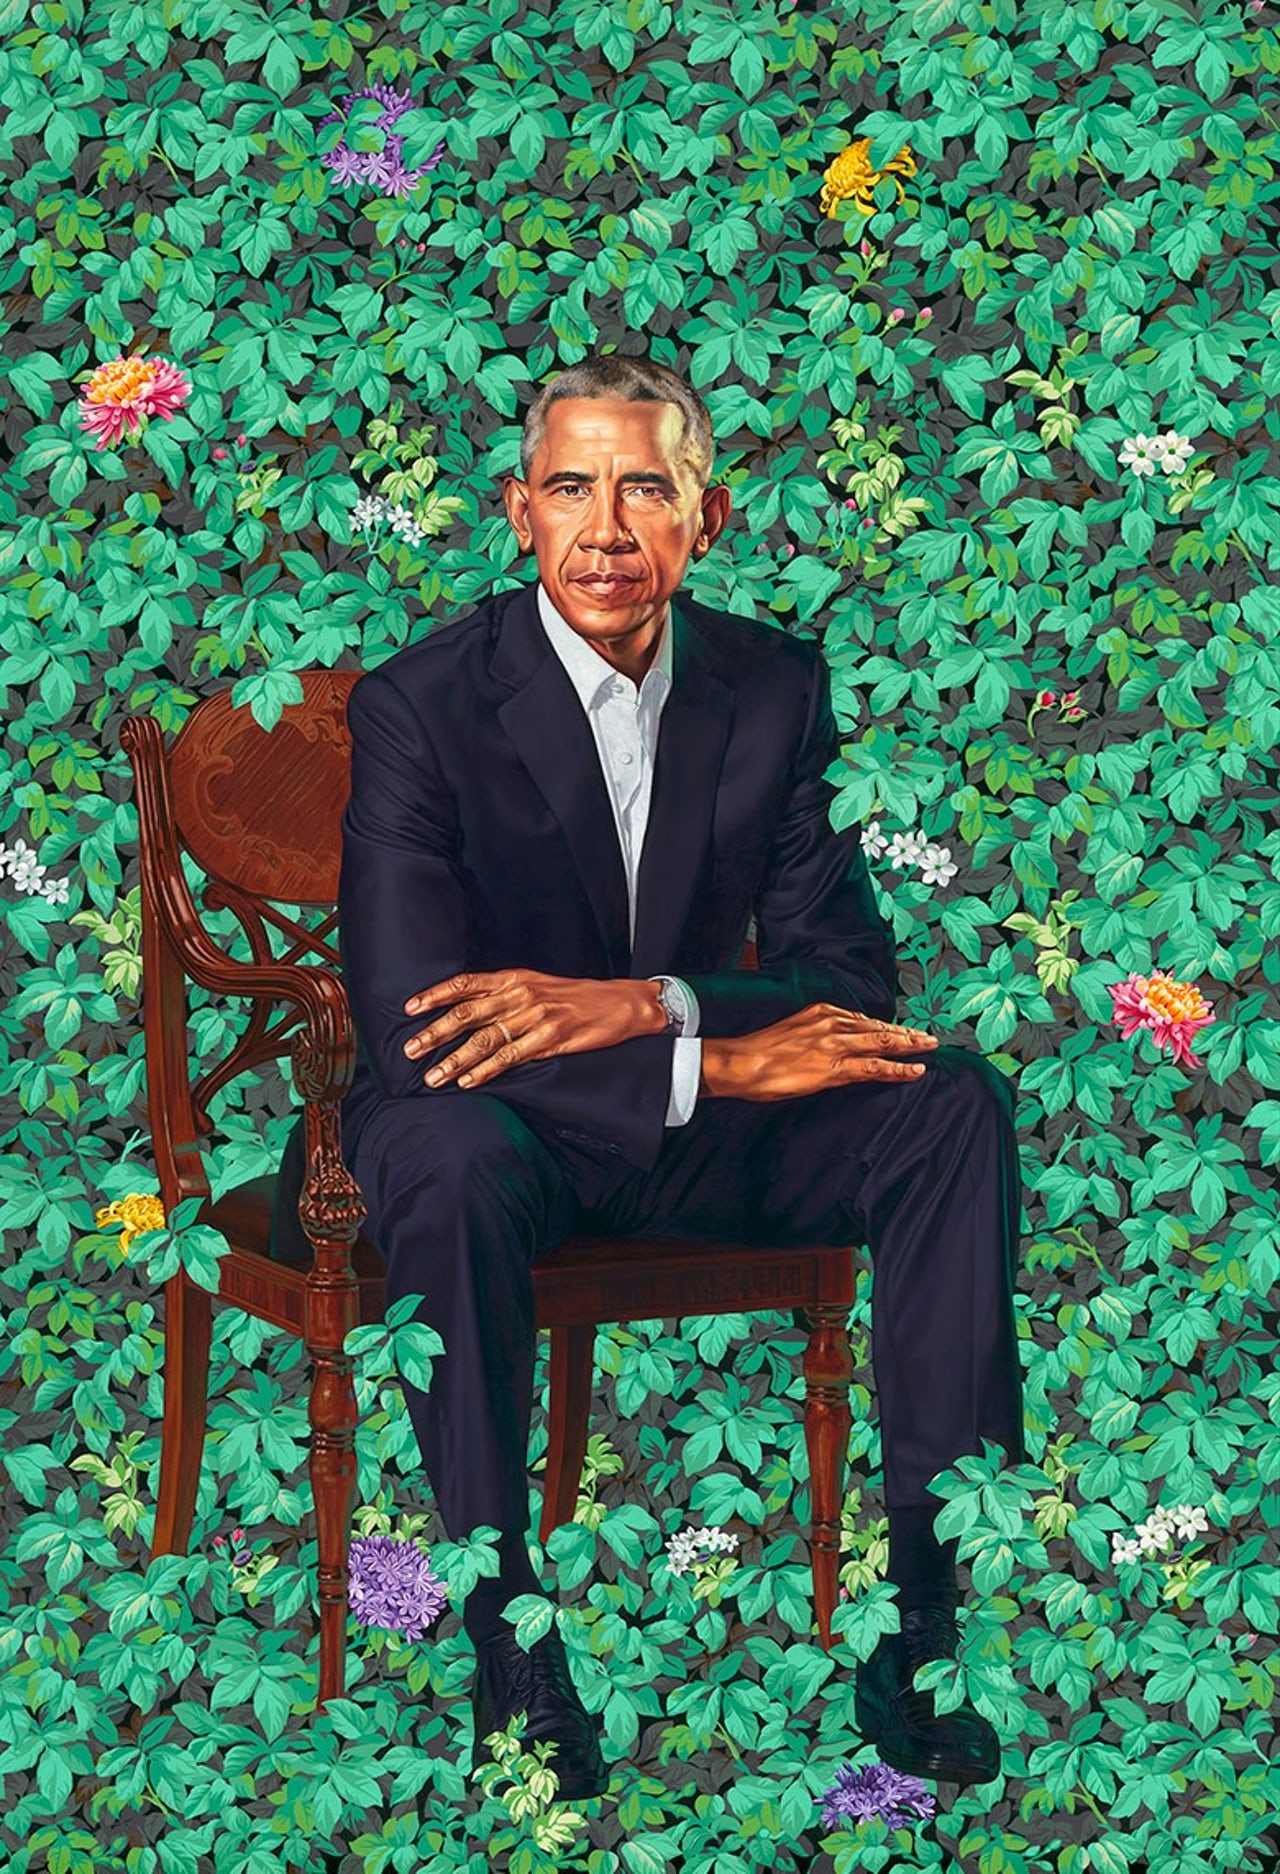 Barack Obama by Kehinde Wiley.